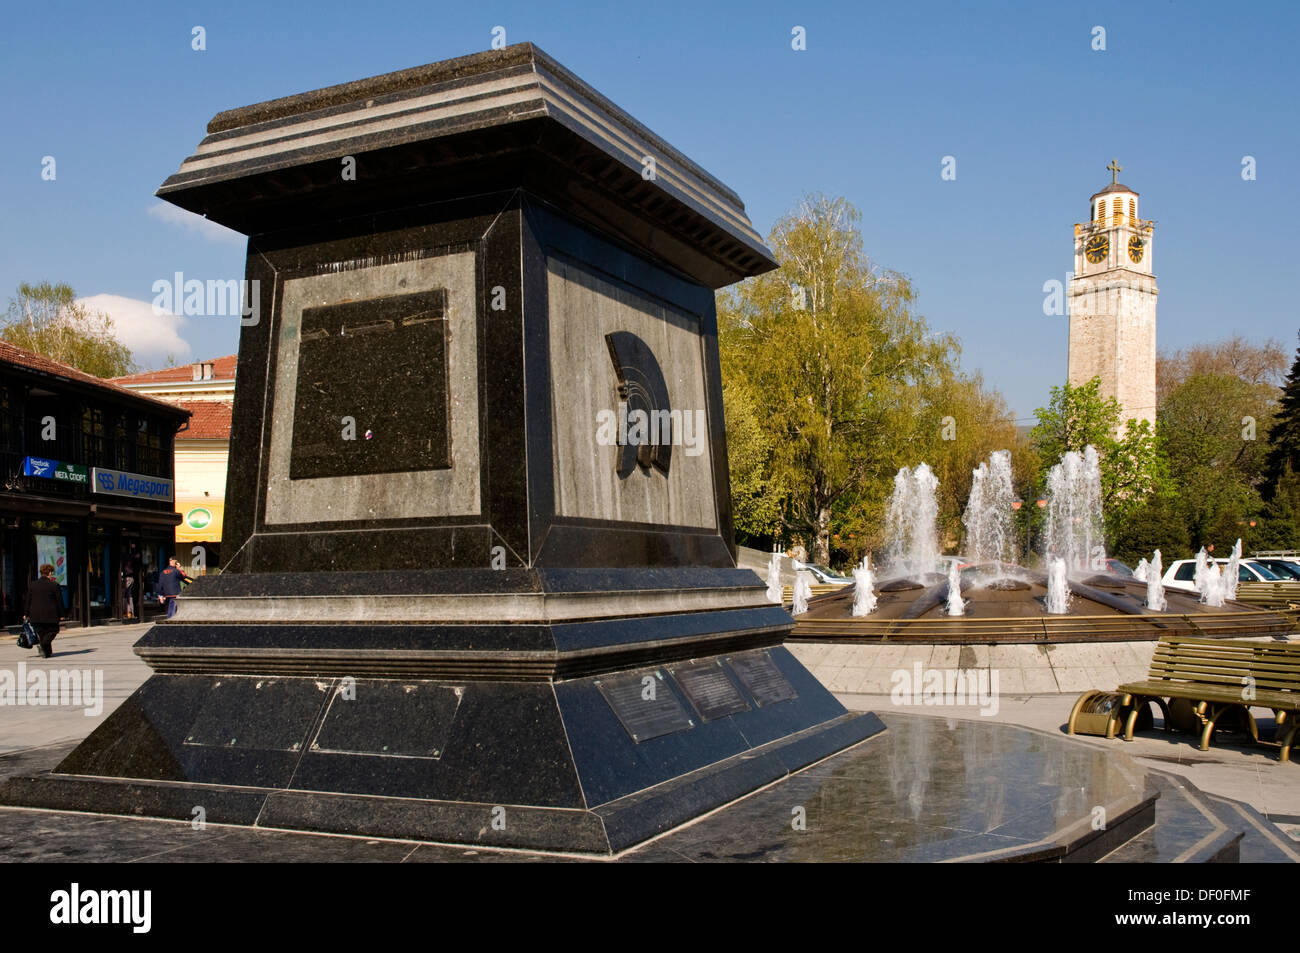 EUROPE, Macedonia, Bitola, monument to Phillip II of Macedonia, father of Alexander the Great, in central square - Stock Image